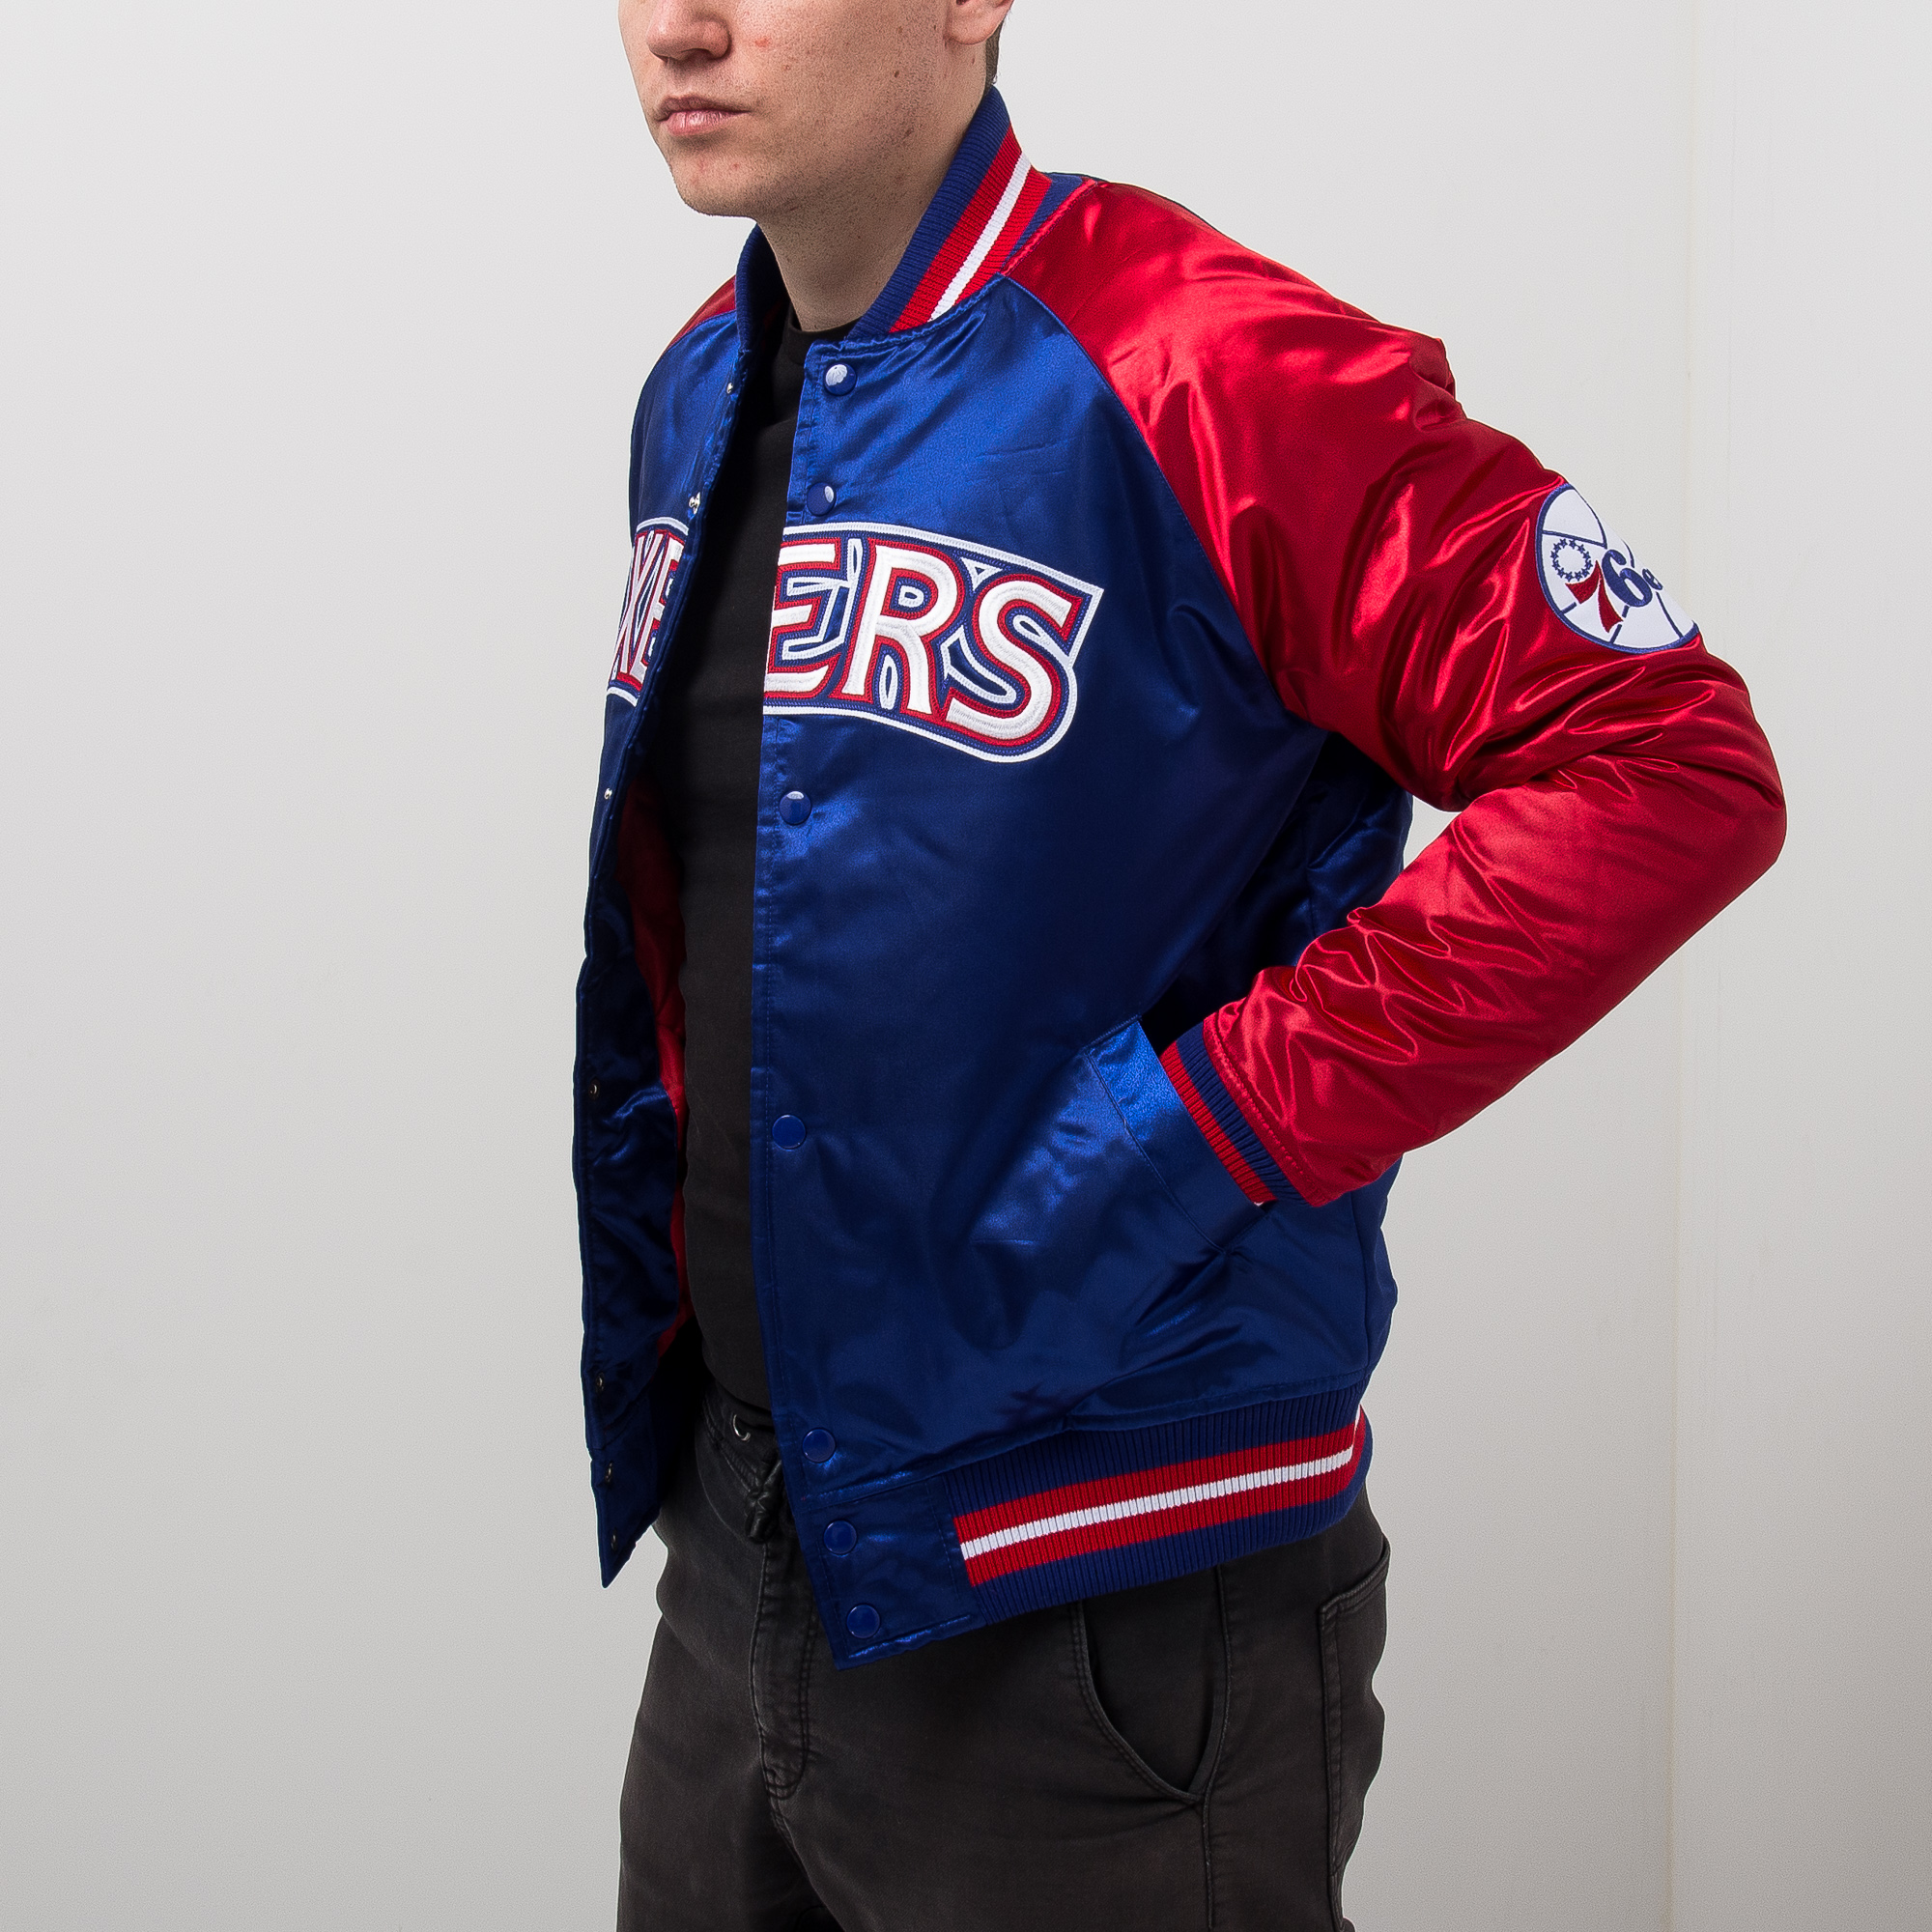 fabe553ec5b Mitchell & Ness NBA Philadelphia 76ers Tough Season Satin Jacket - NBA Shop  Philadelphia 76ers Merchandise - Superfanas.lt